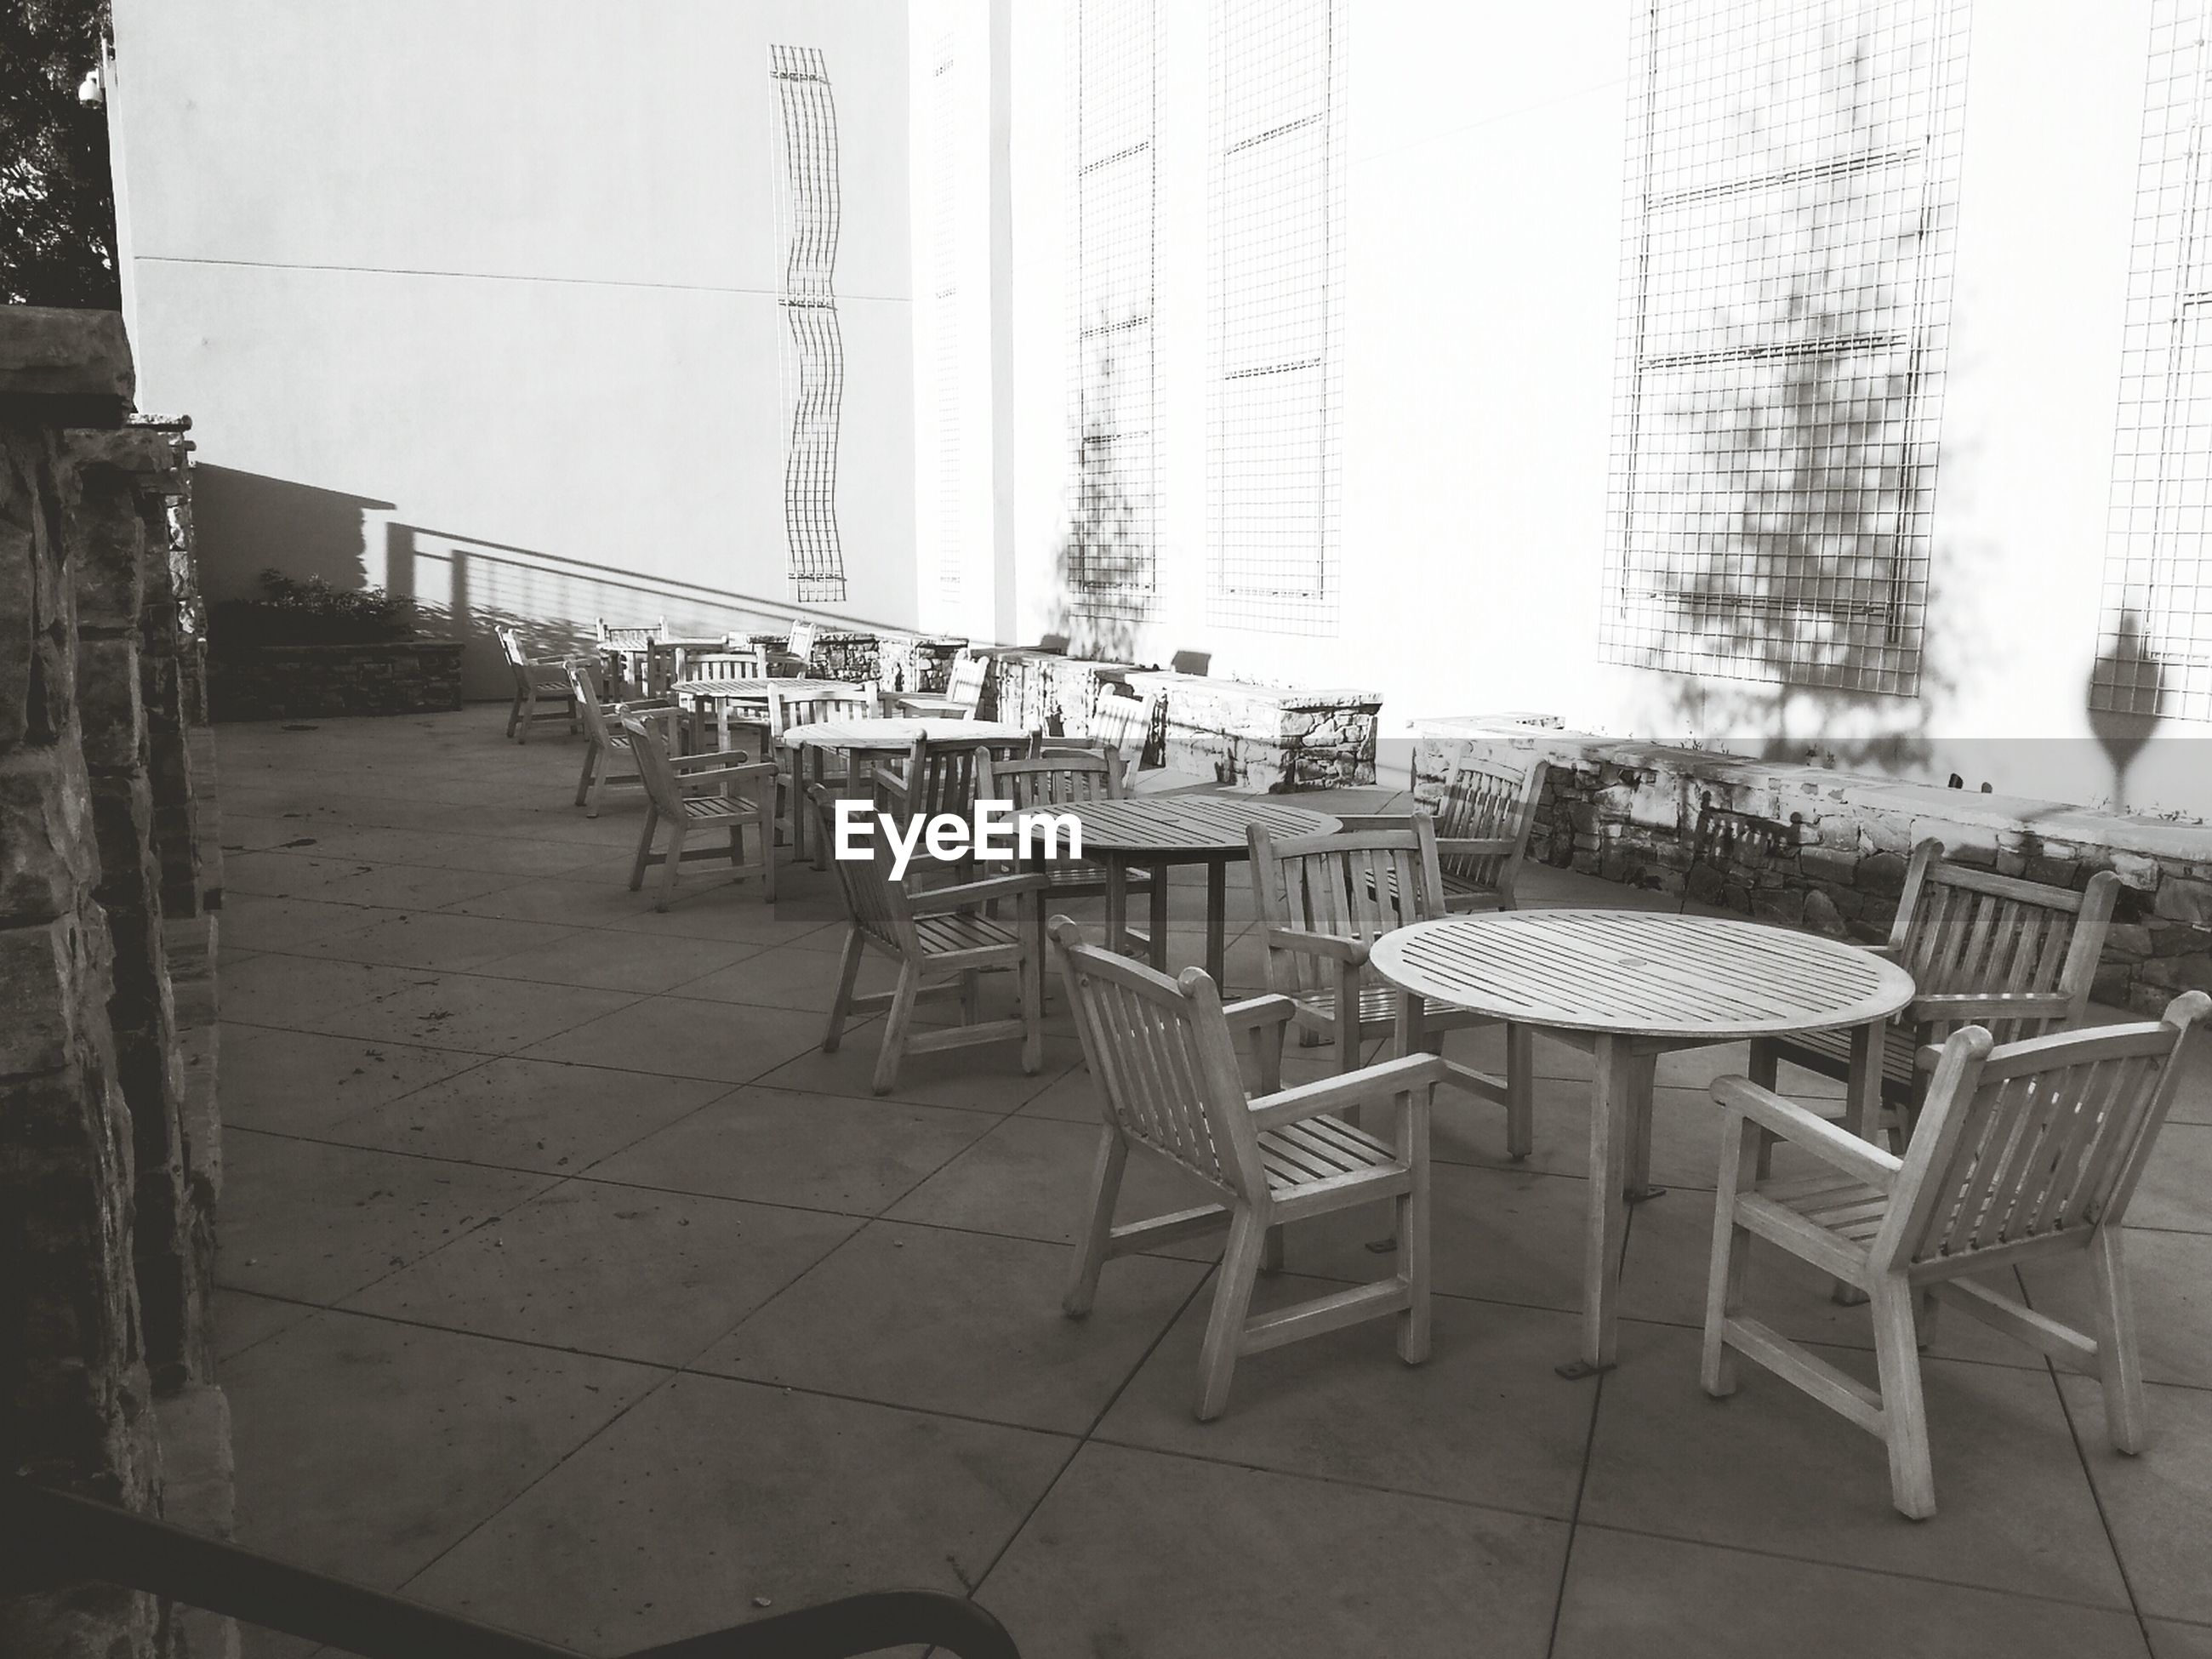 chair, empty, absence, built structure, architecture, table, seat, building exterior, sunlight, day, arrangement, bench, in a row, no people, wood - material, shadow, outdoors, furniture, wall - building feature, restaurant